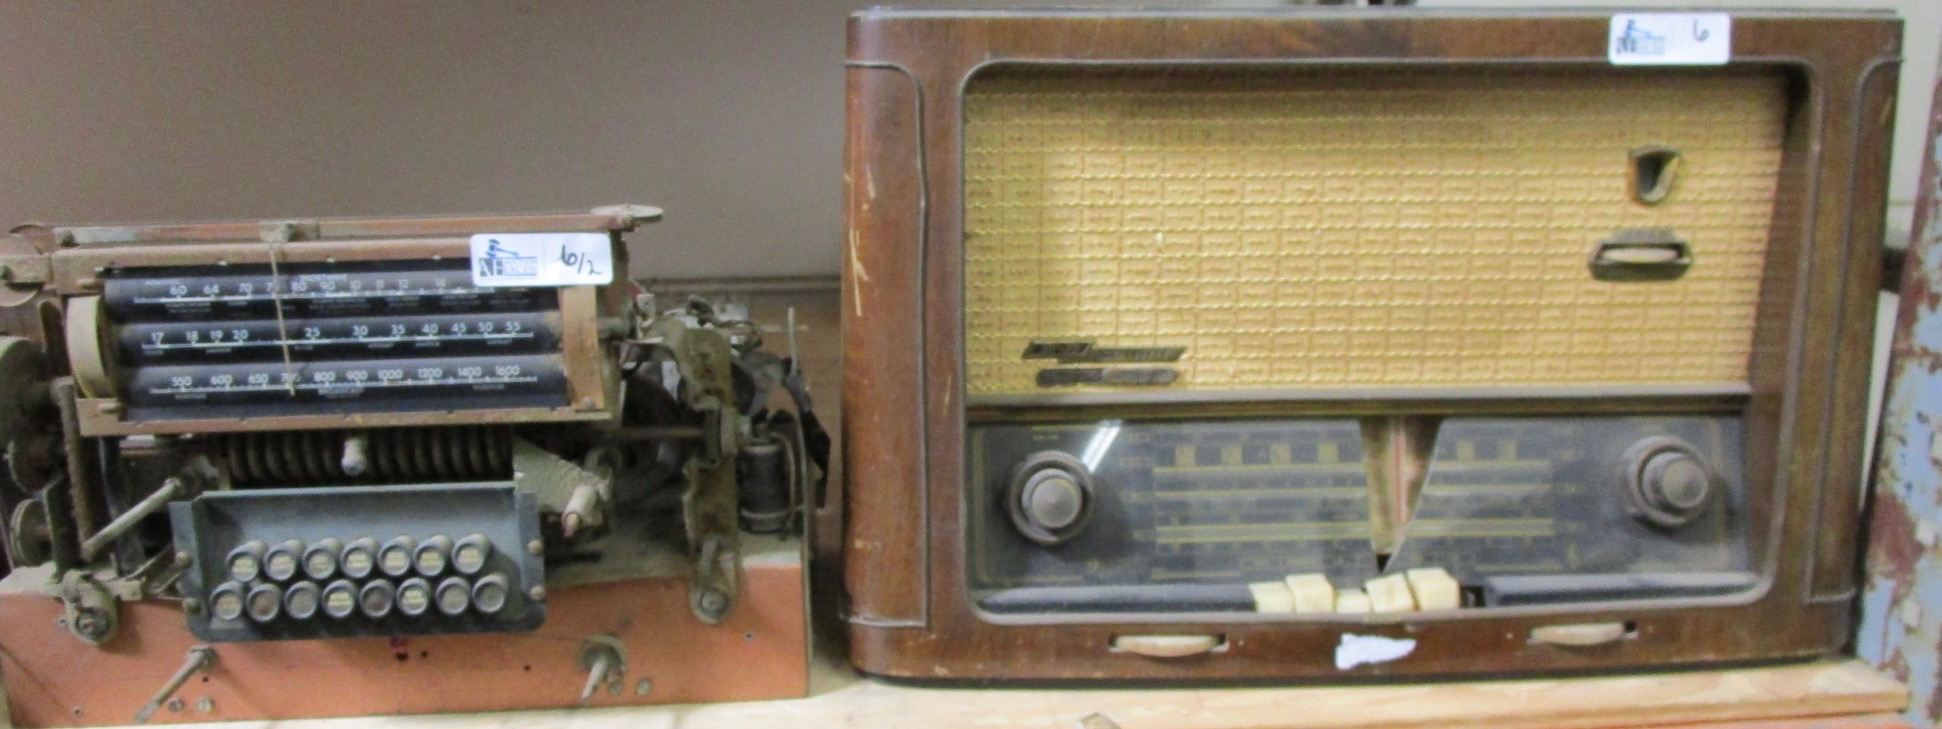 LOT OF 2 VINTAGE RADIOS INCLUDING GRUNDIG, MAJESTIC WITH TUBES